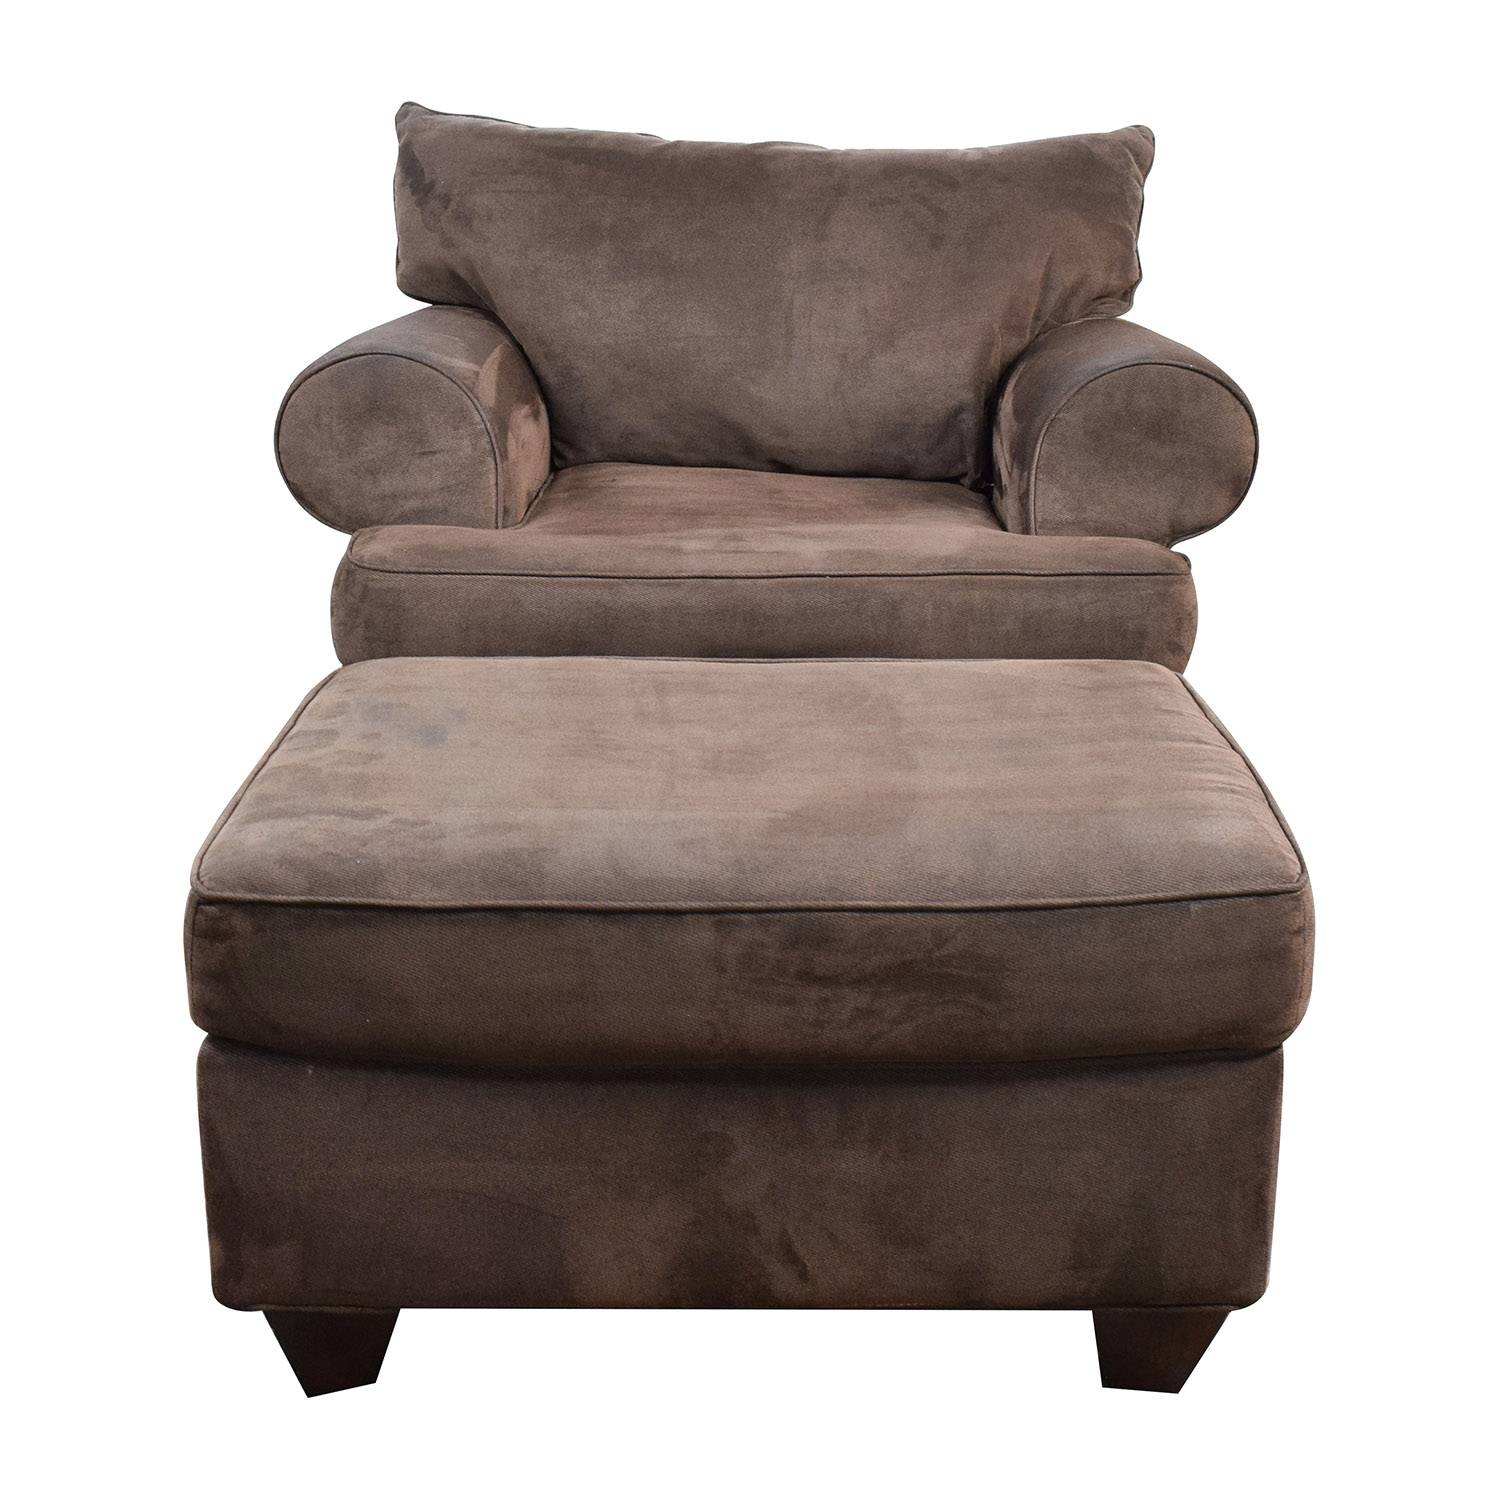 67% Off   Dark Brown Sofa Chair With Ottoman / Chairs With Regard To Brown Sofa Chairs (Photo 10 of 15)